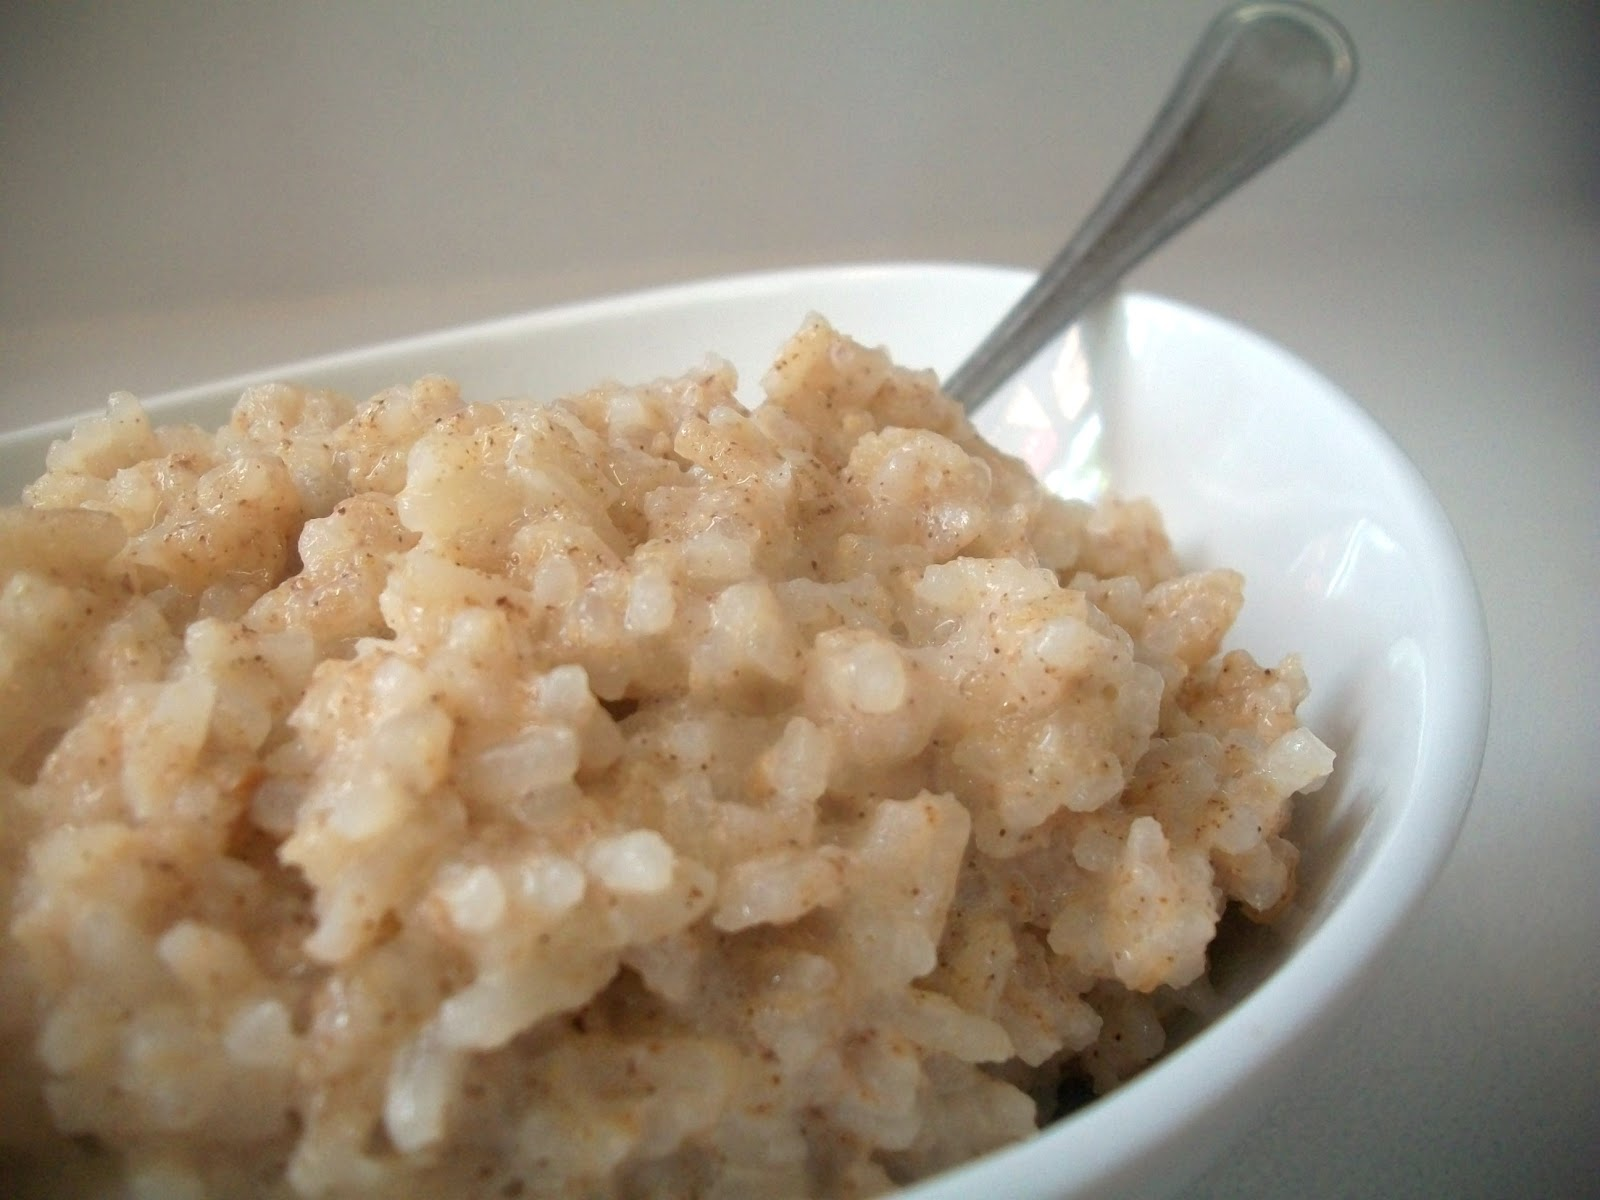 My Kind of Cooking: Slow Cooker Rice Pudding